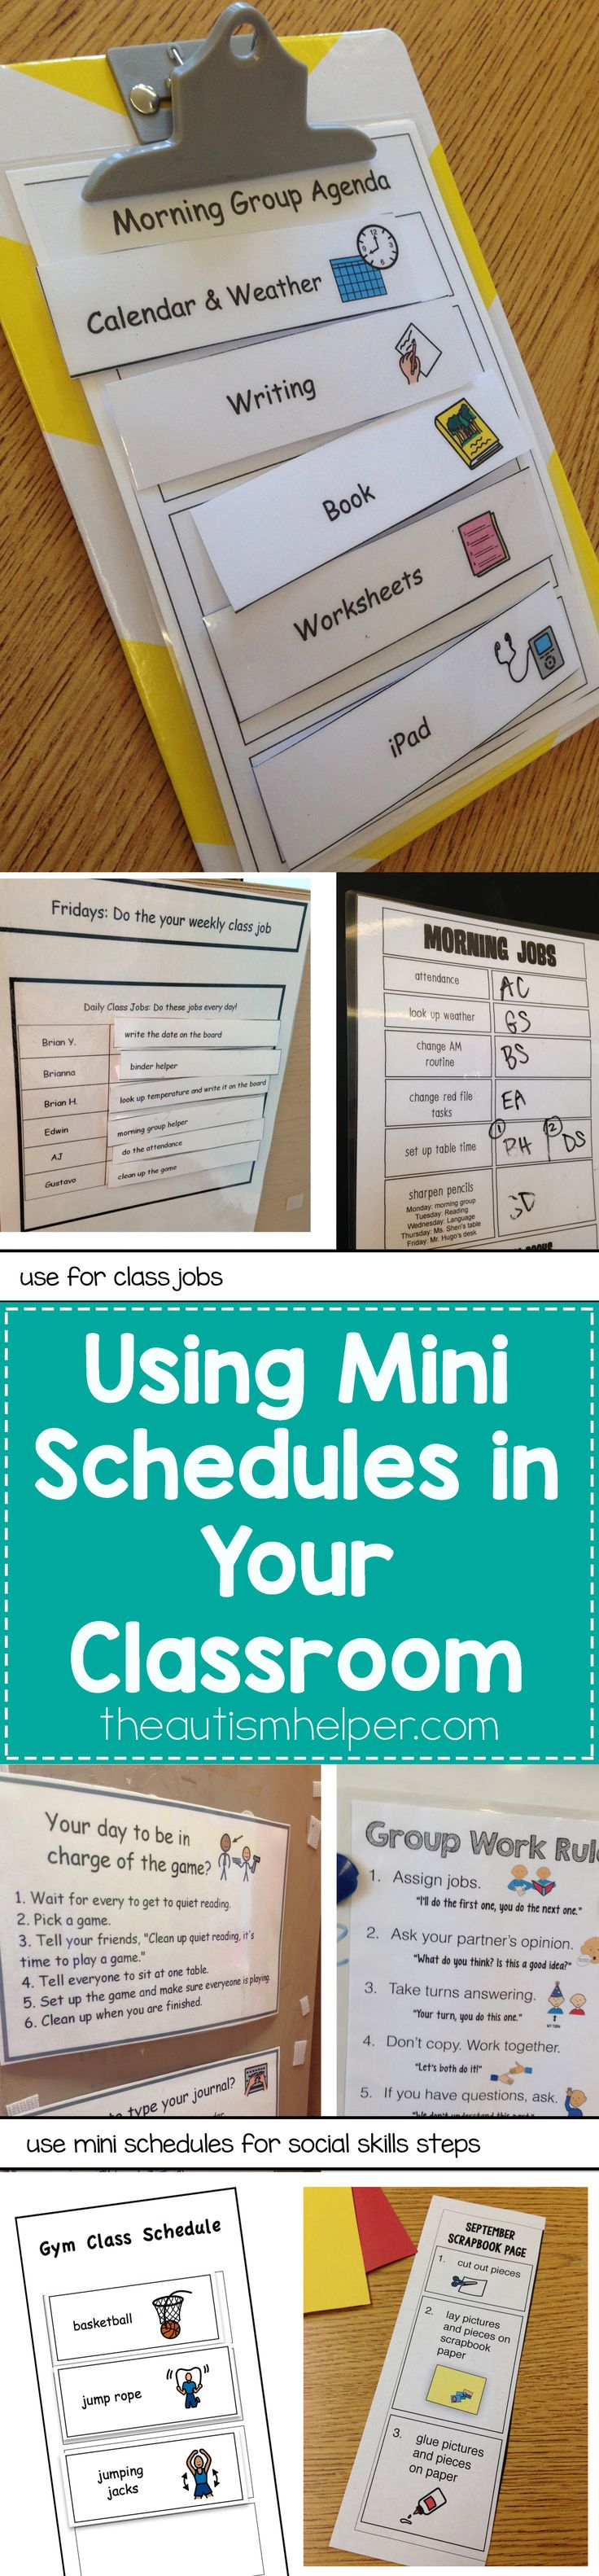 Time to highlight the importance of mini schedules in your classroom. They show embedded steps & routines, help increase independence, & are great for inclusion. Sold yet? From theautismhelper.com